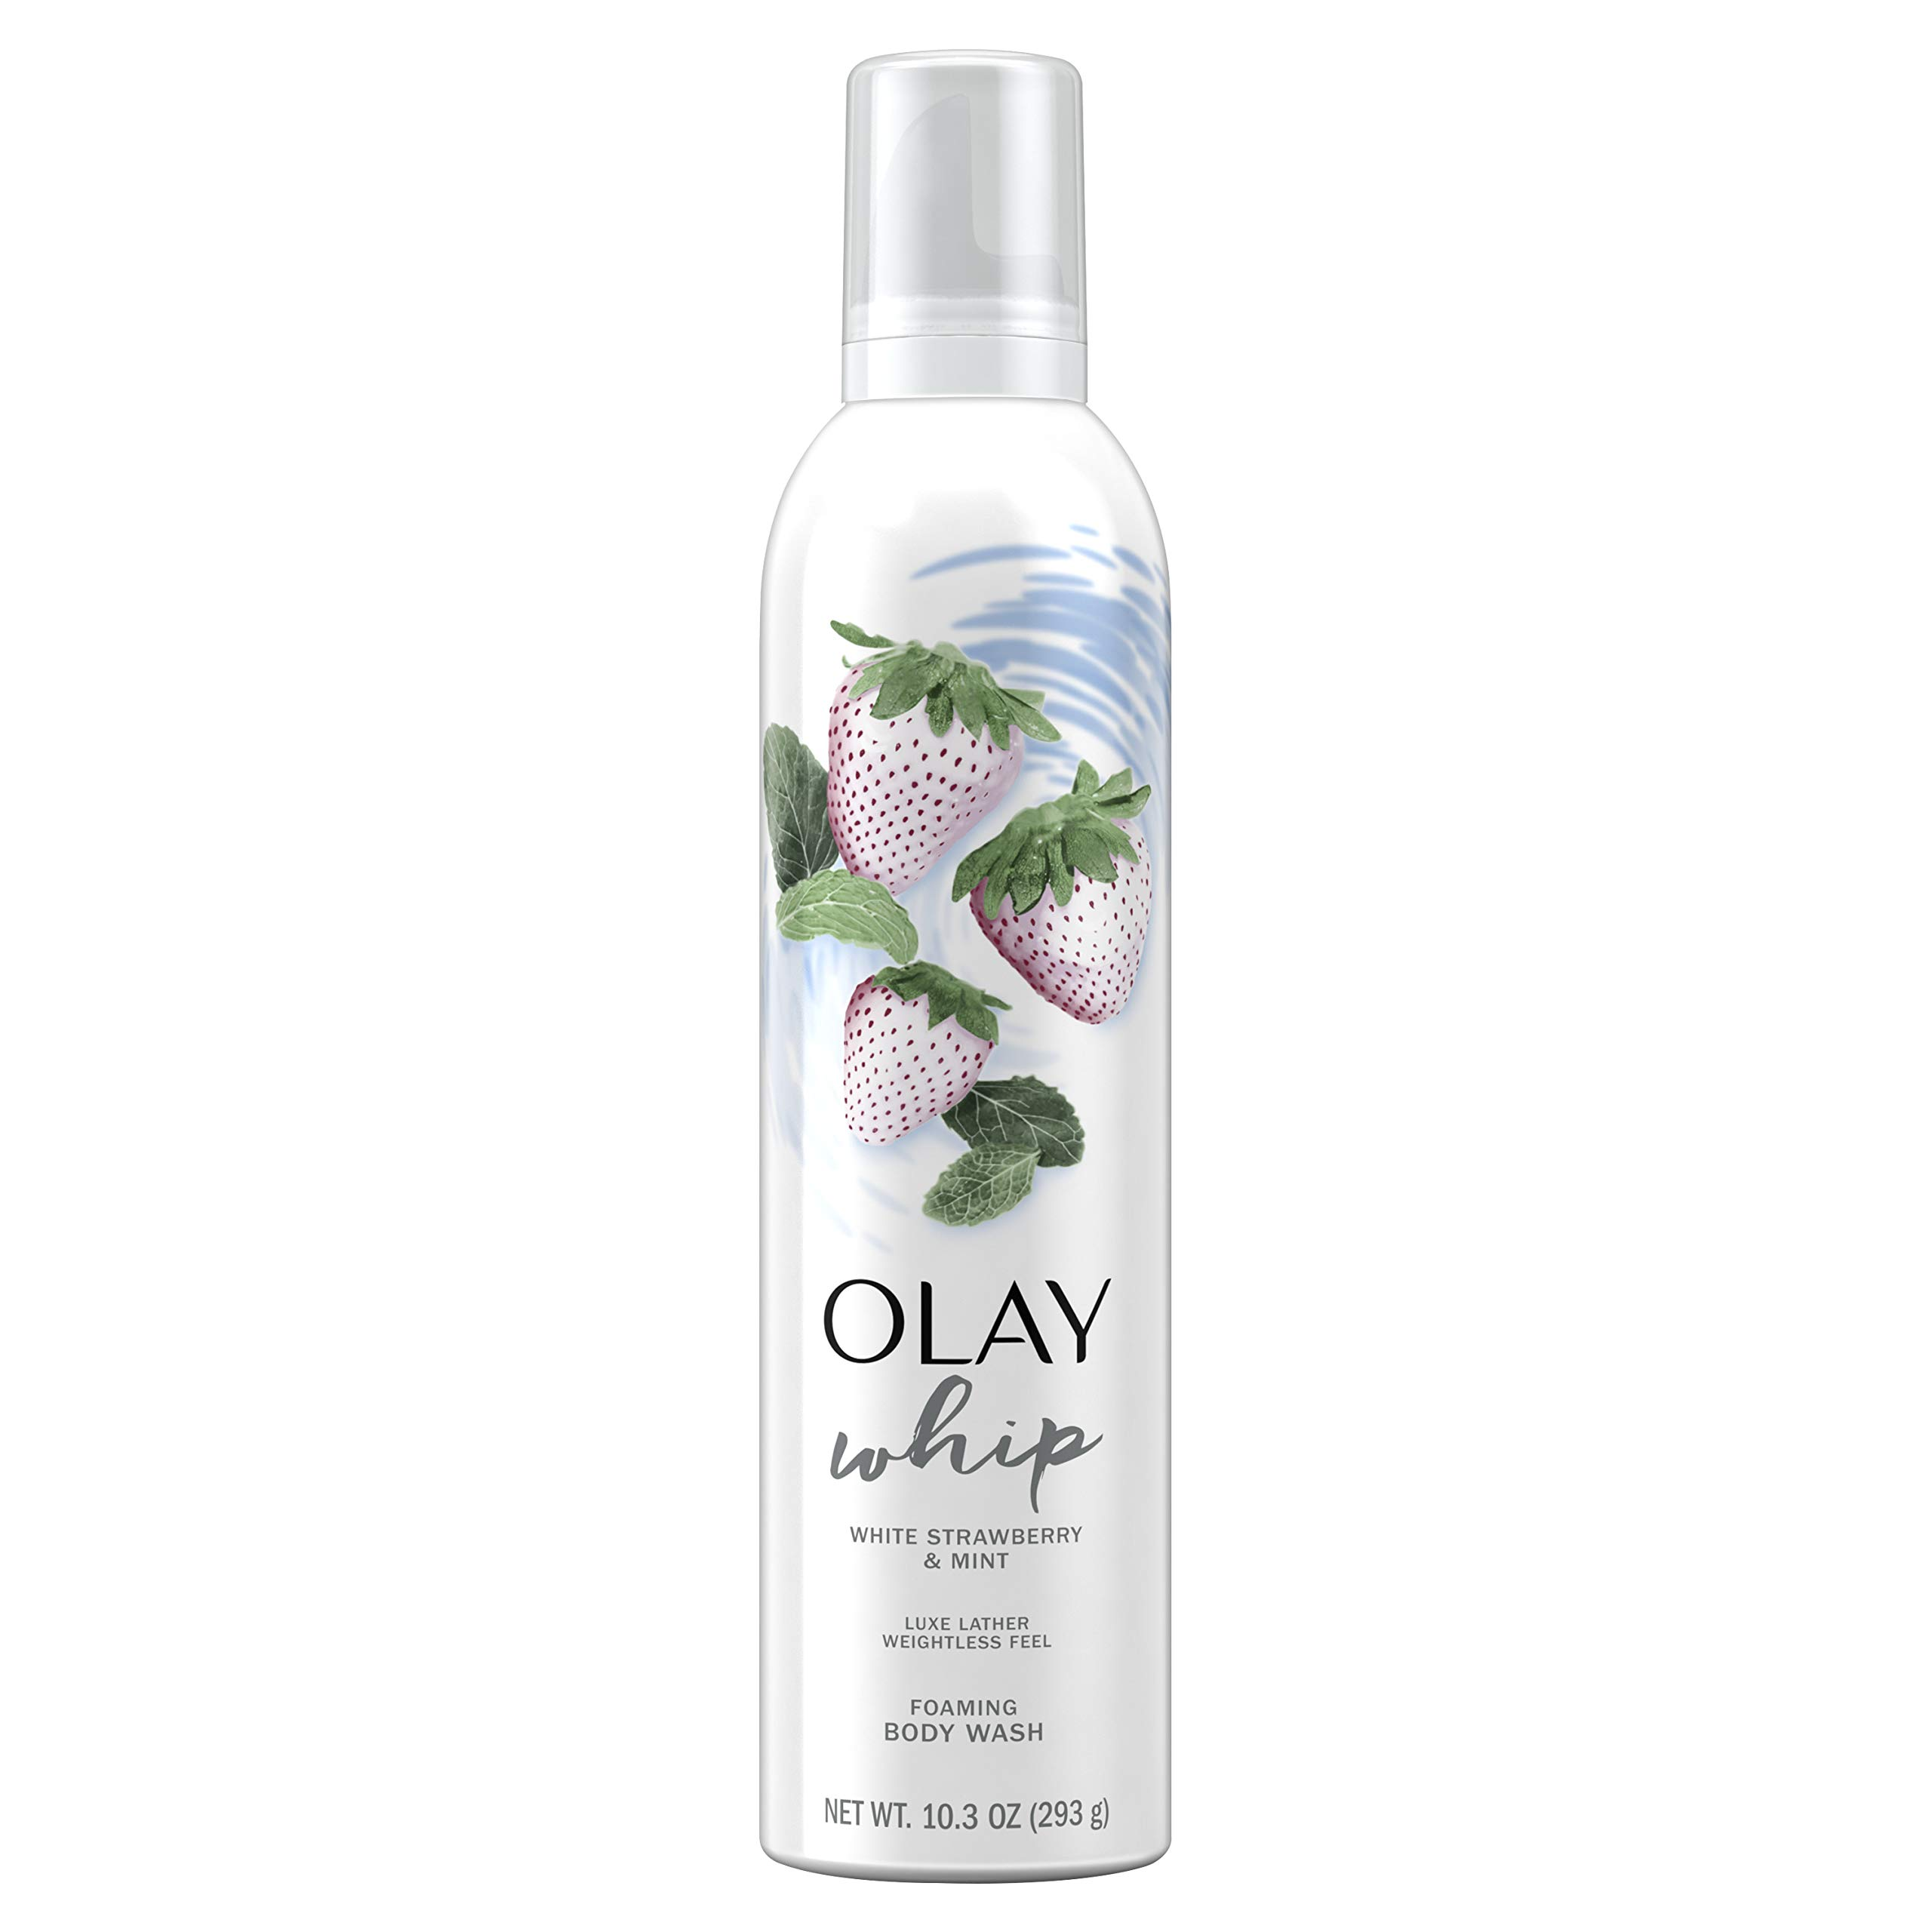 Olay White Strawberry and Mint Scent Foaming Whip Body Wash for Women, 10.3 oz